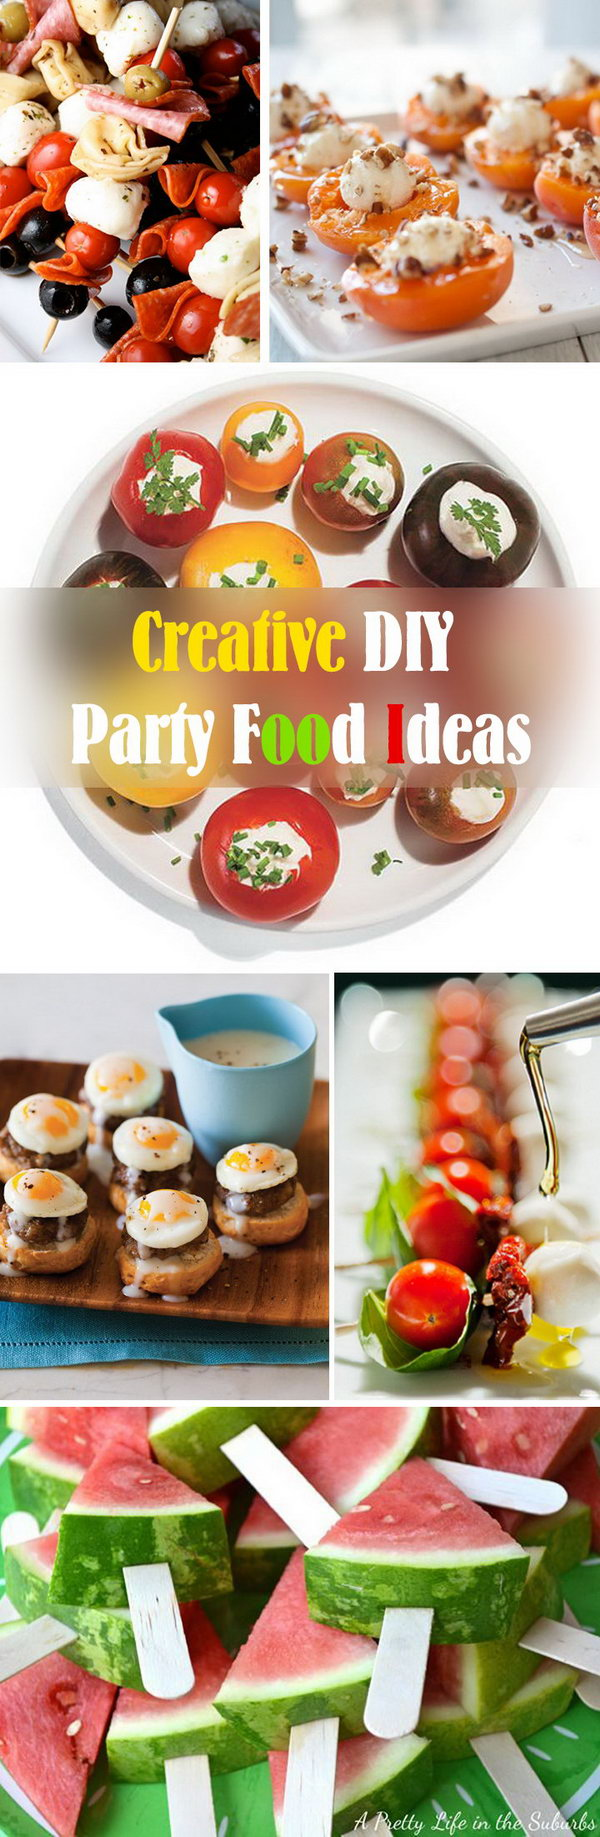 Creative DIY Party Food Ideas!